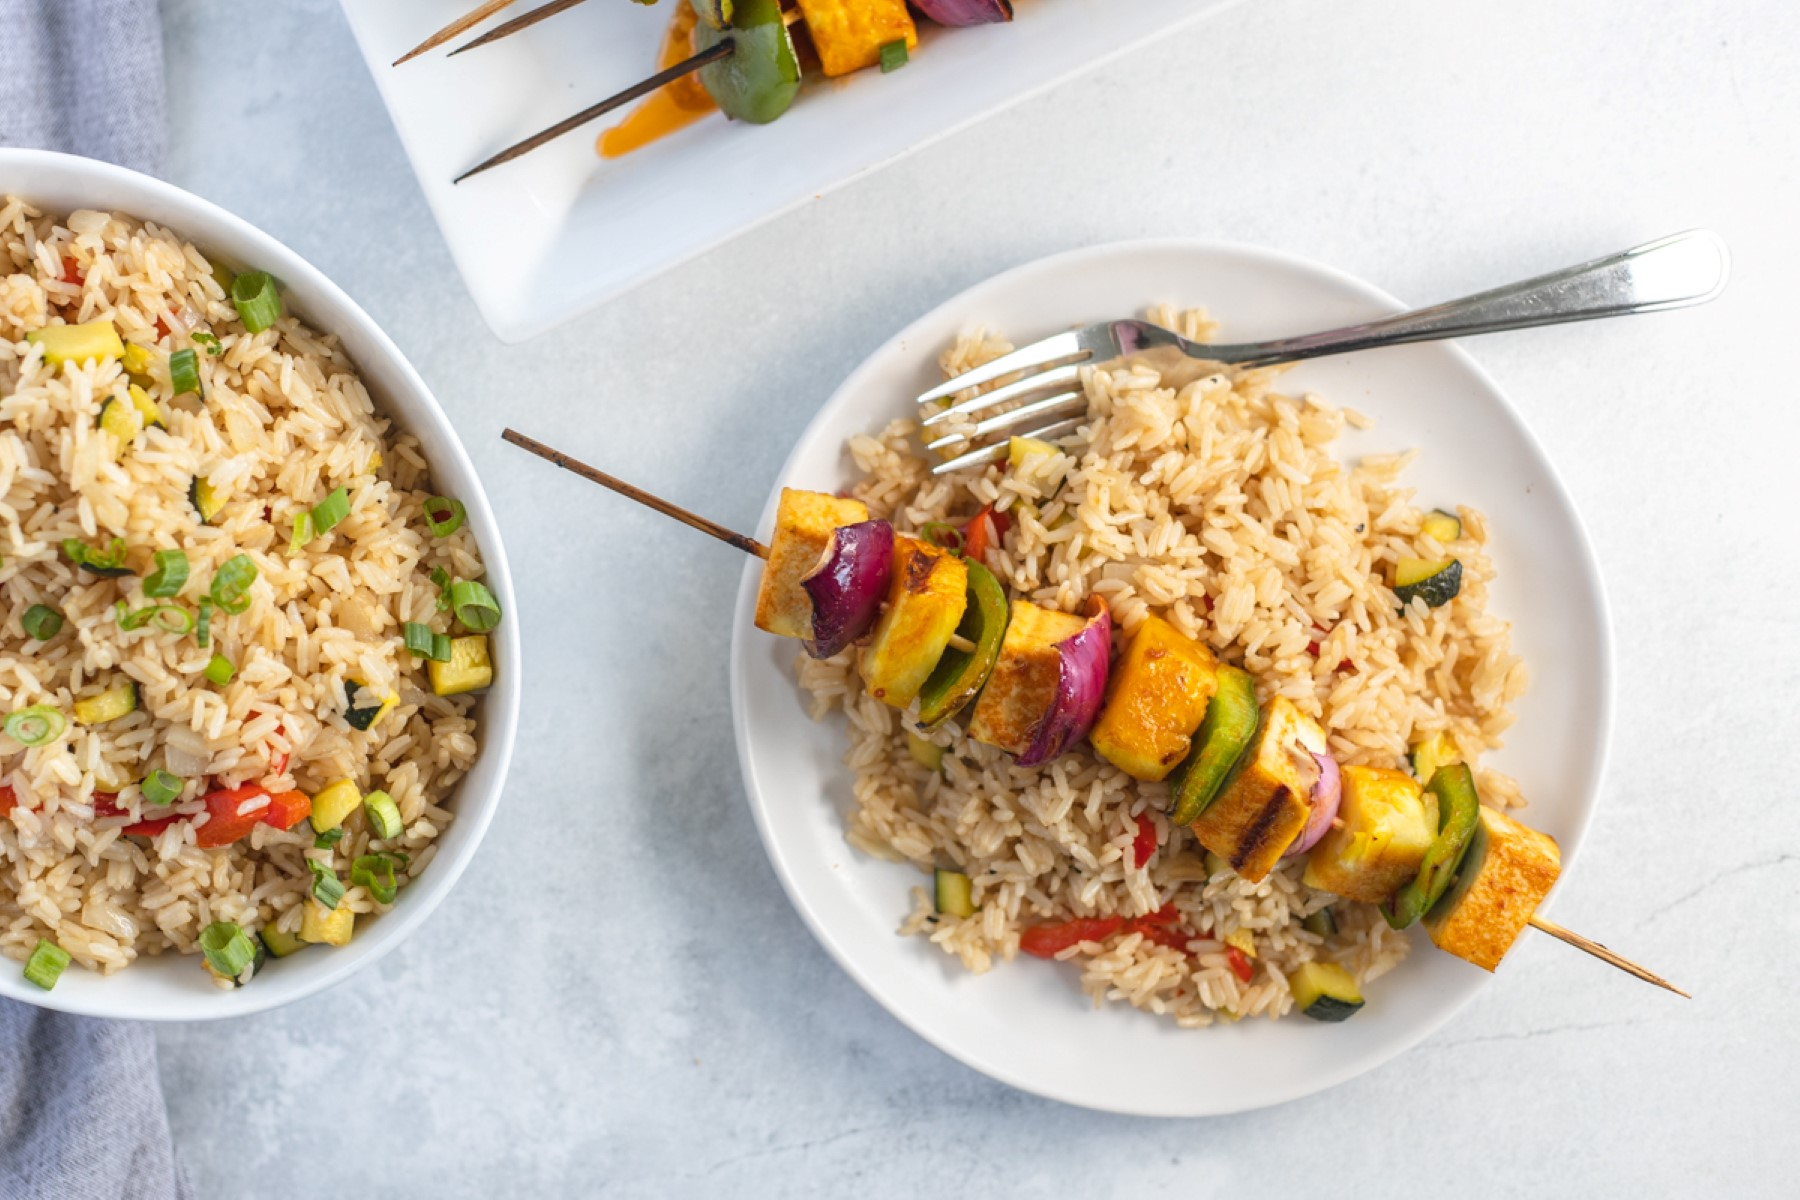 Plate of fried rice with a cooked Hawaiian grilled tofu skewer on top with a bowl of fried rice and fork on the plate.